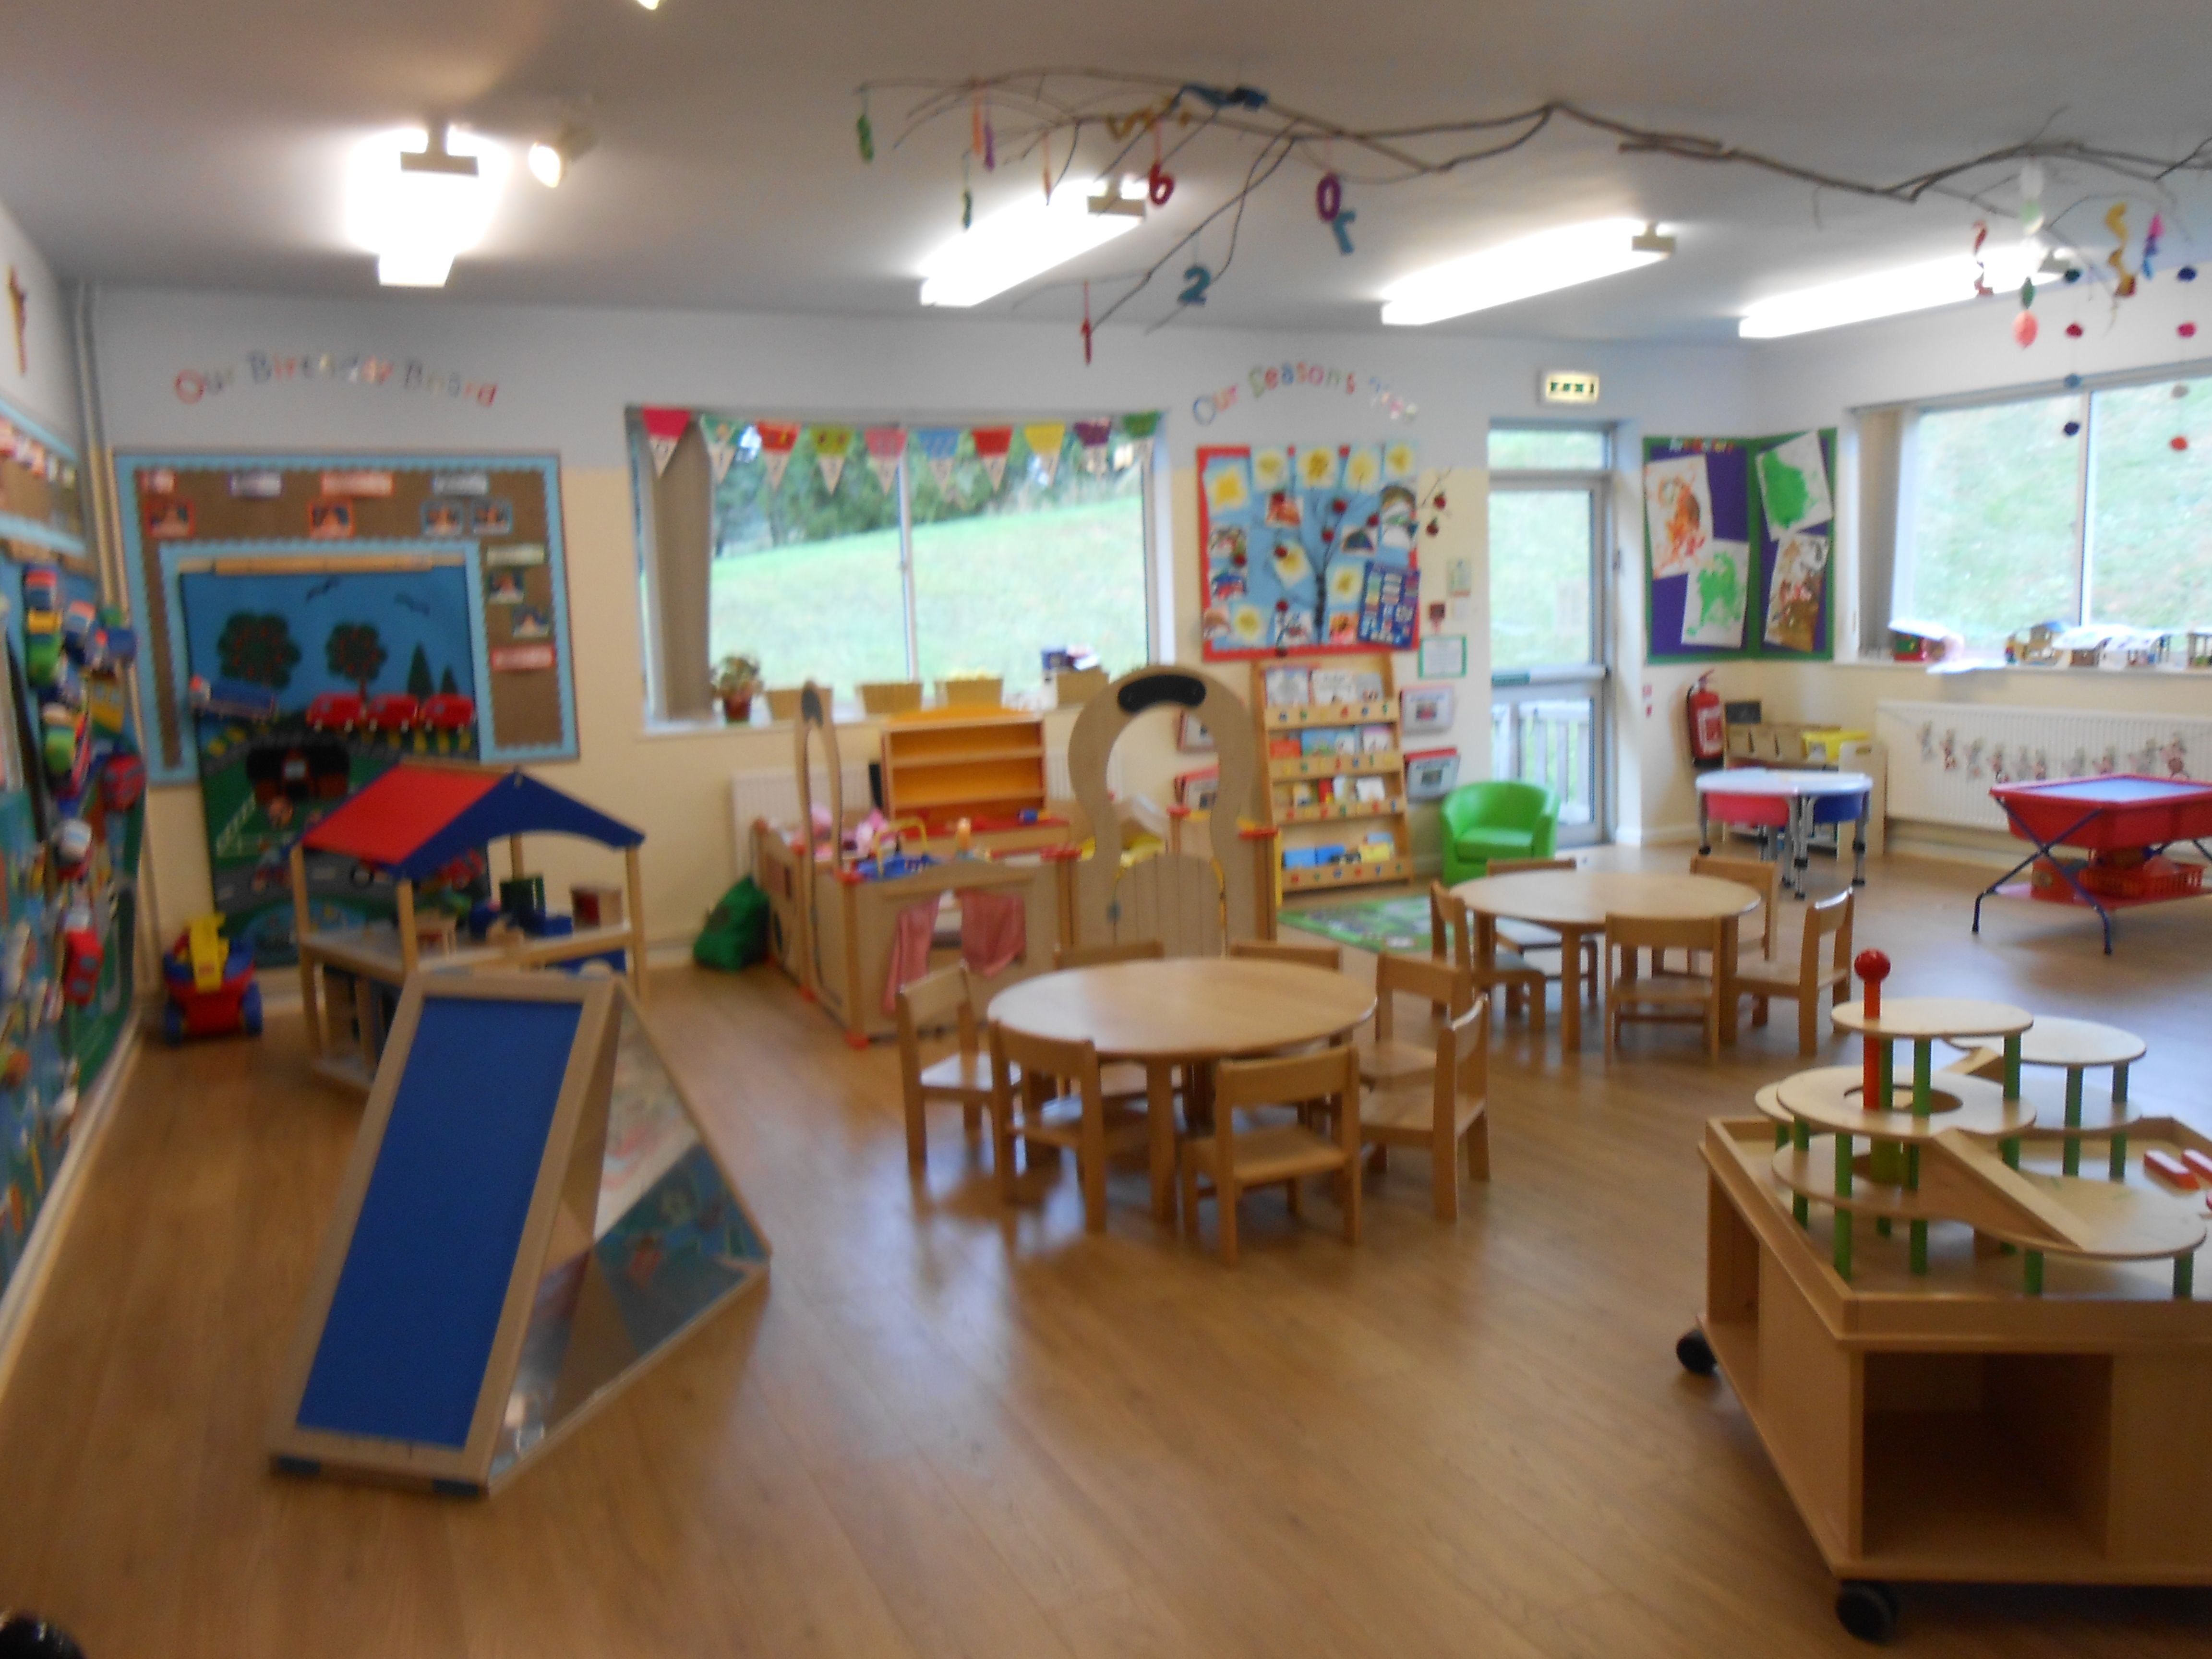 Classroom Design Guide ~ Reggio inspired classroom pinned by lynn young ≈≈ http